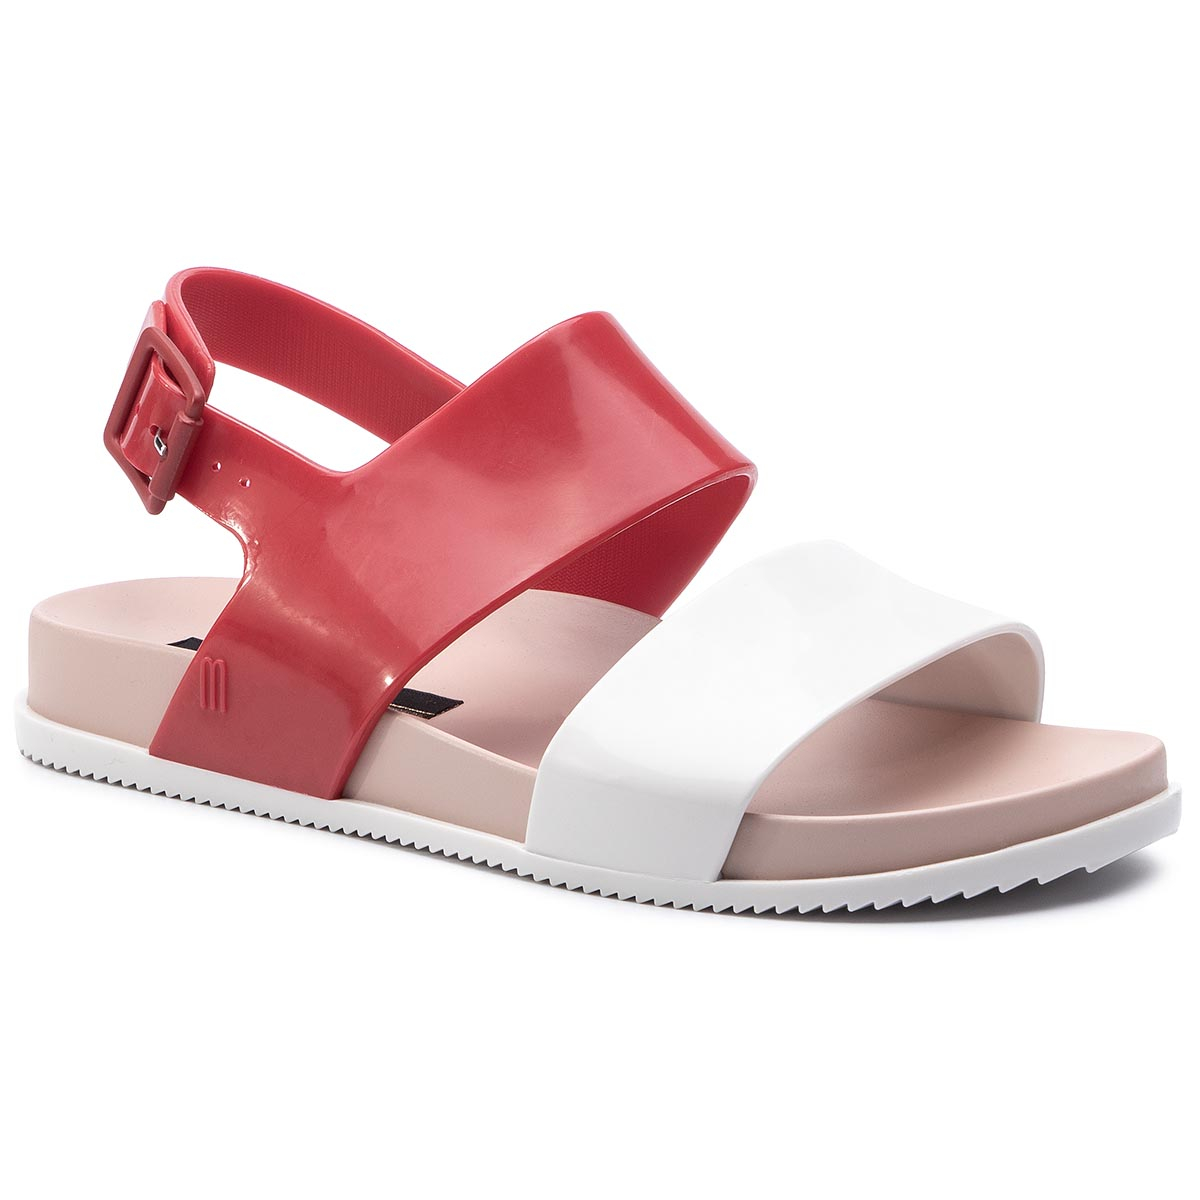 Sandale Melissa - Cosmic Sandal Iii Ad 32495 Pink/White/Red 53472 imagine epantofi.ro 2021